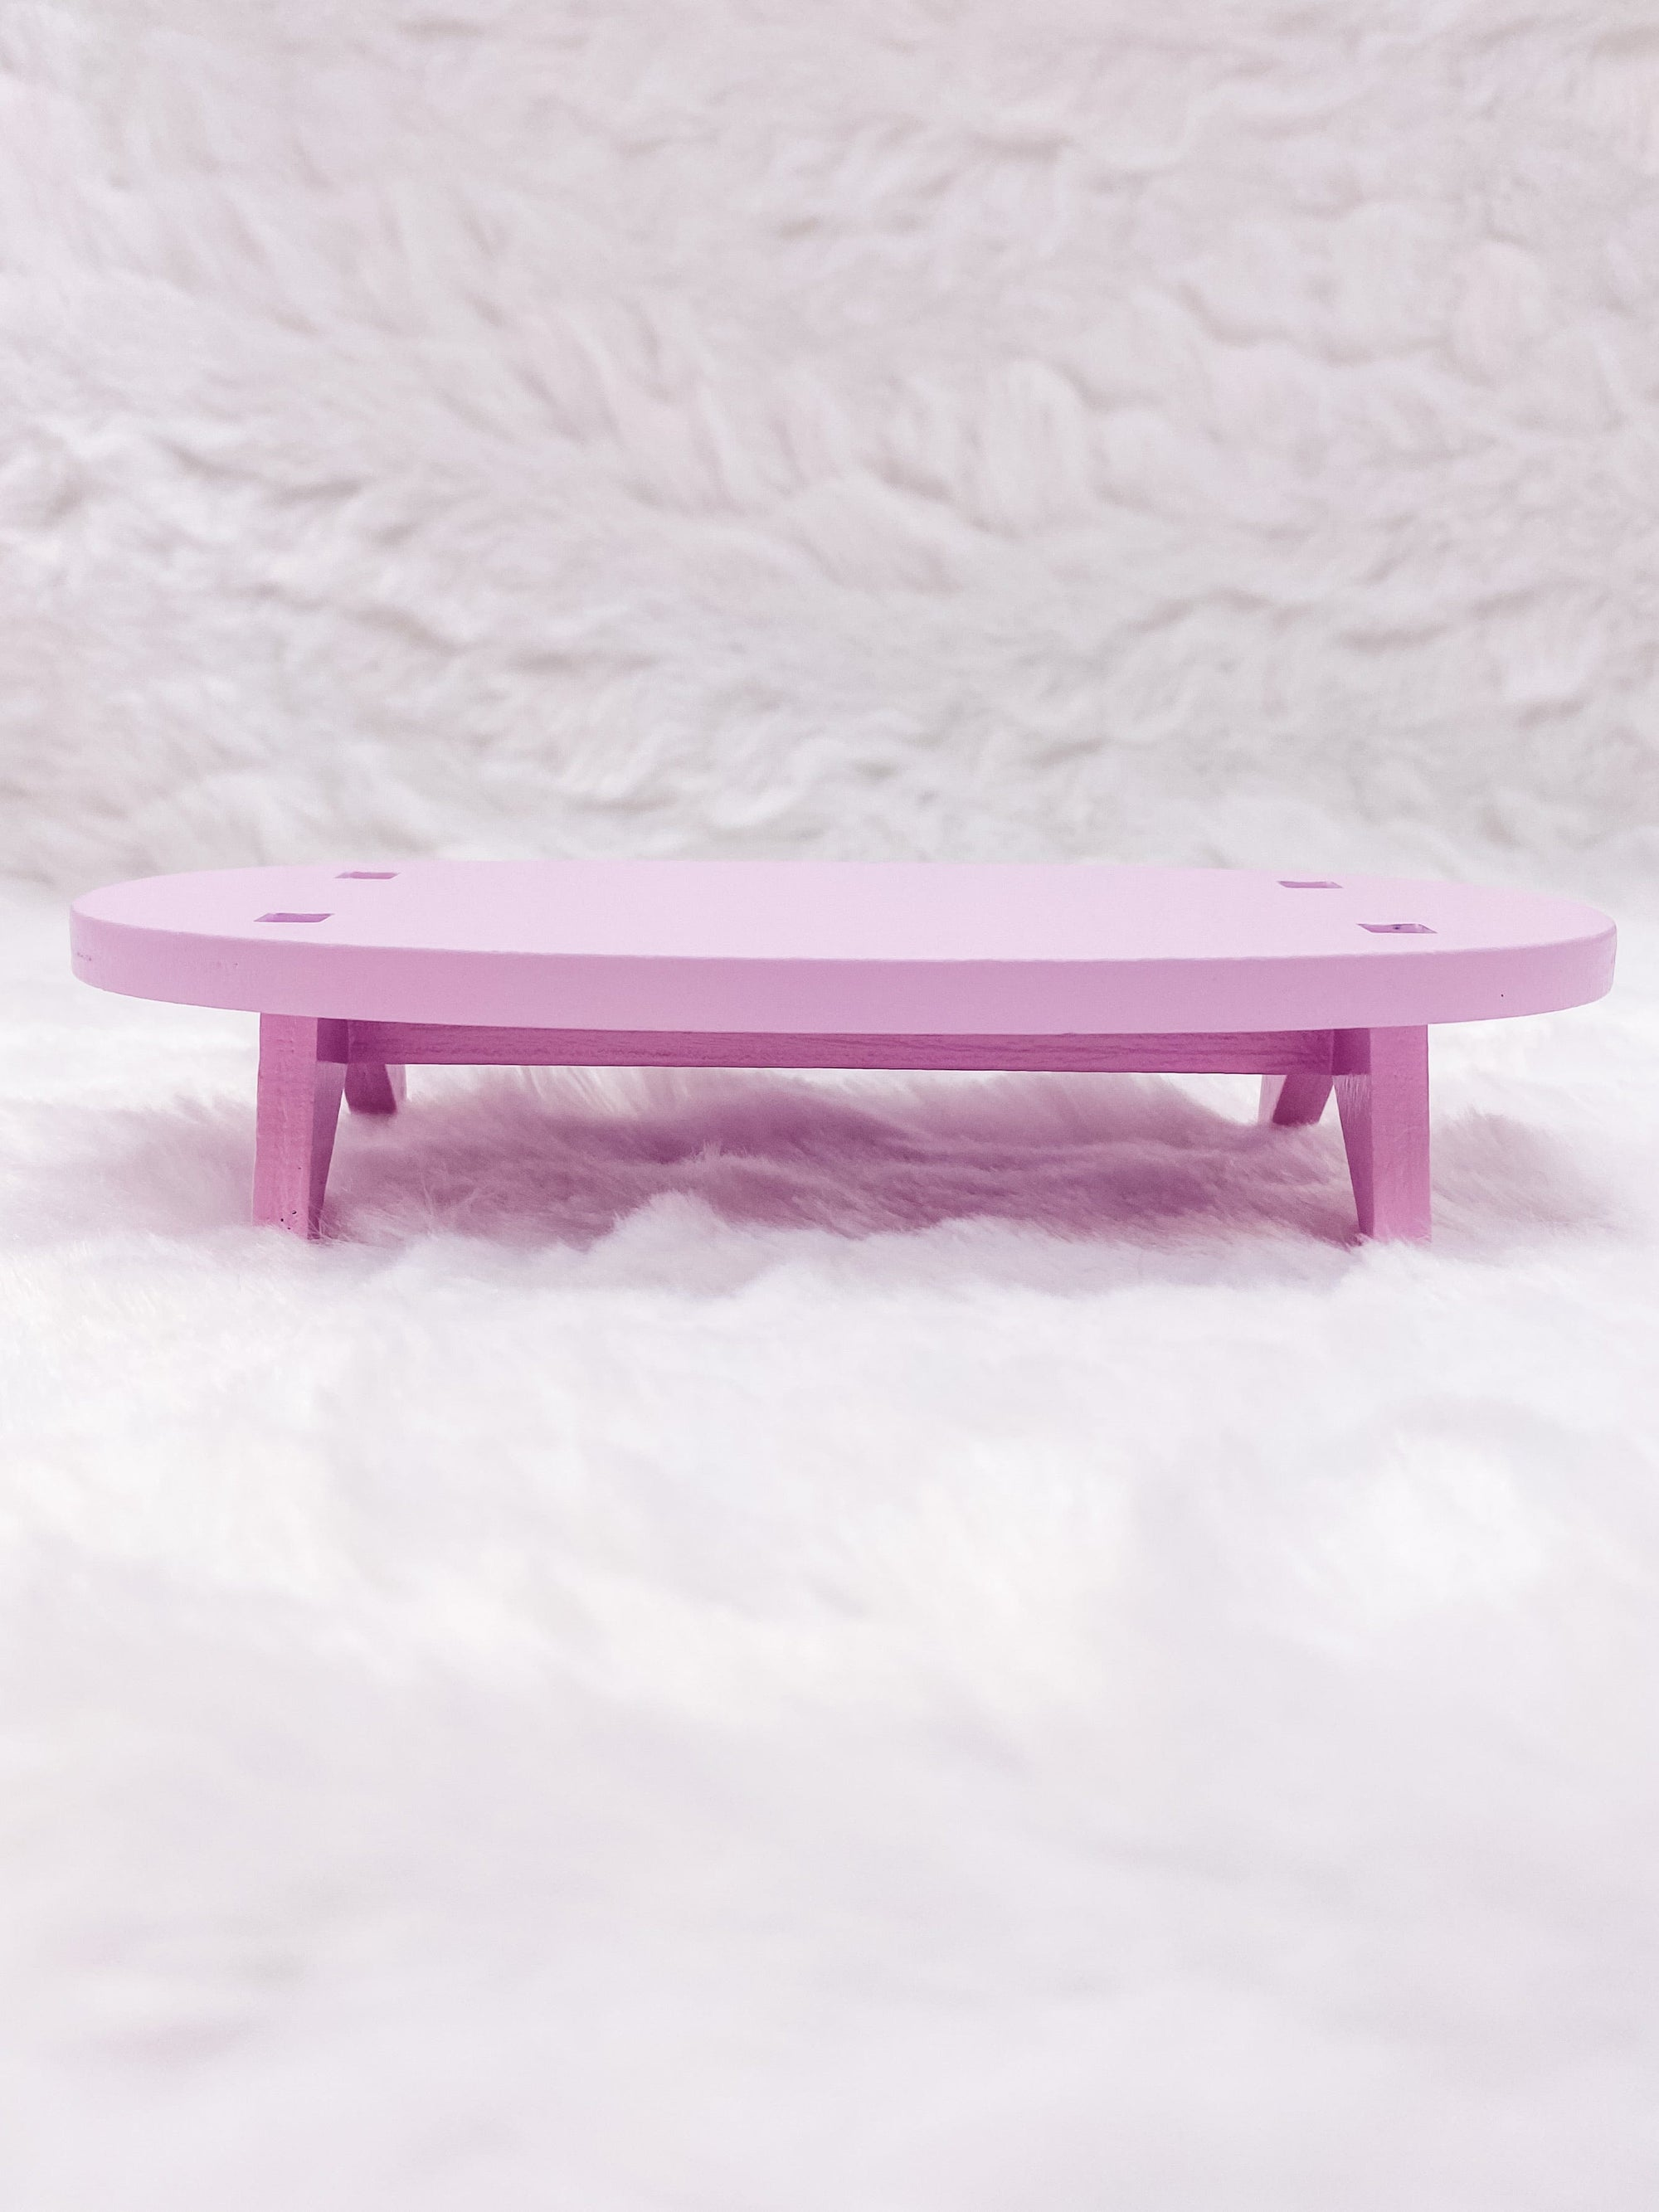 Oval Table: Very Mattary Strawberry by Decole